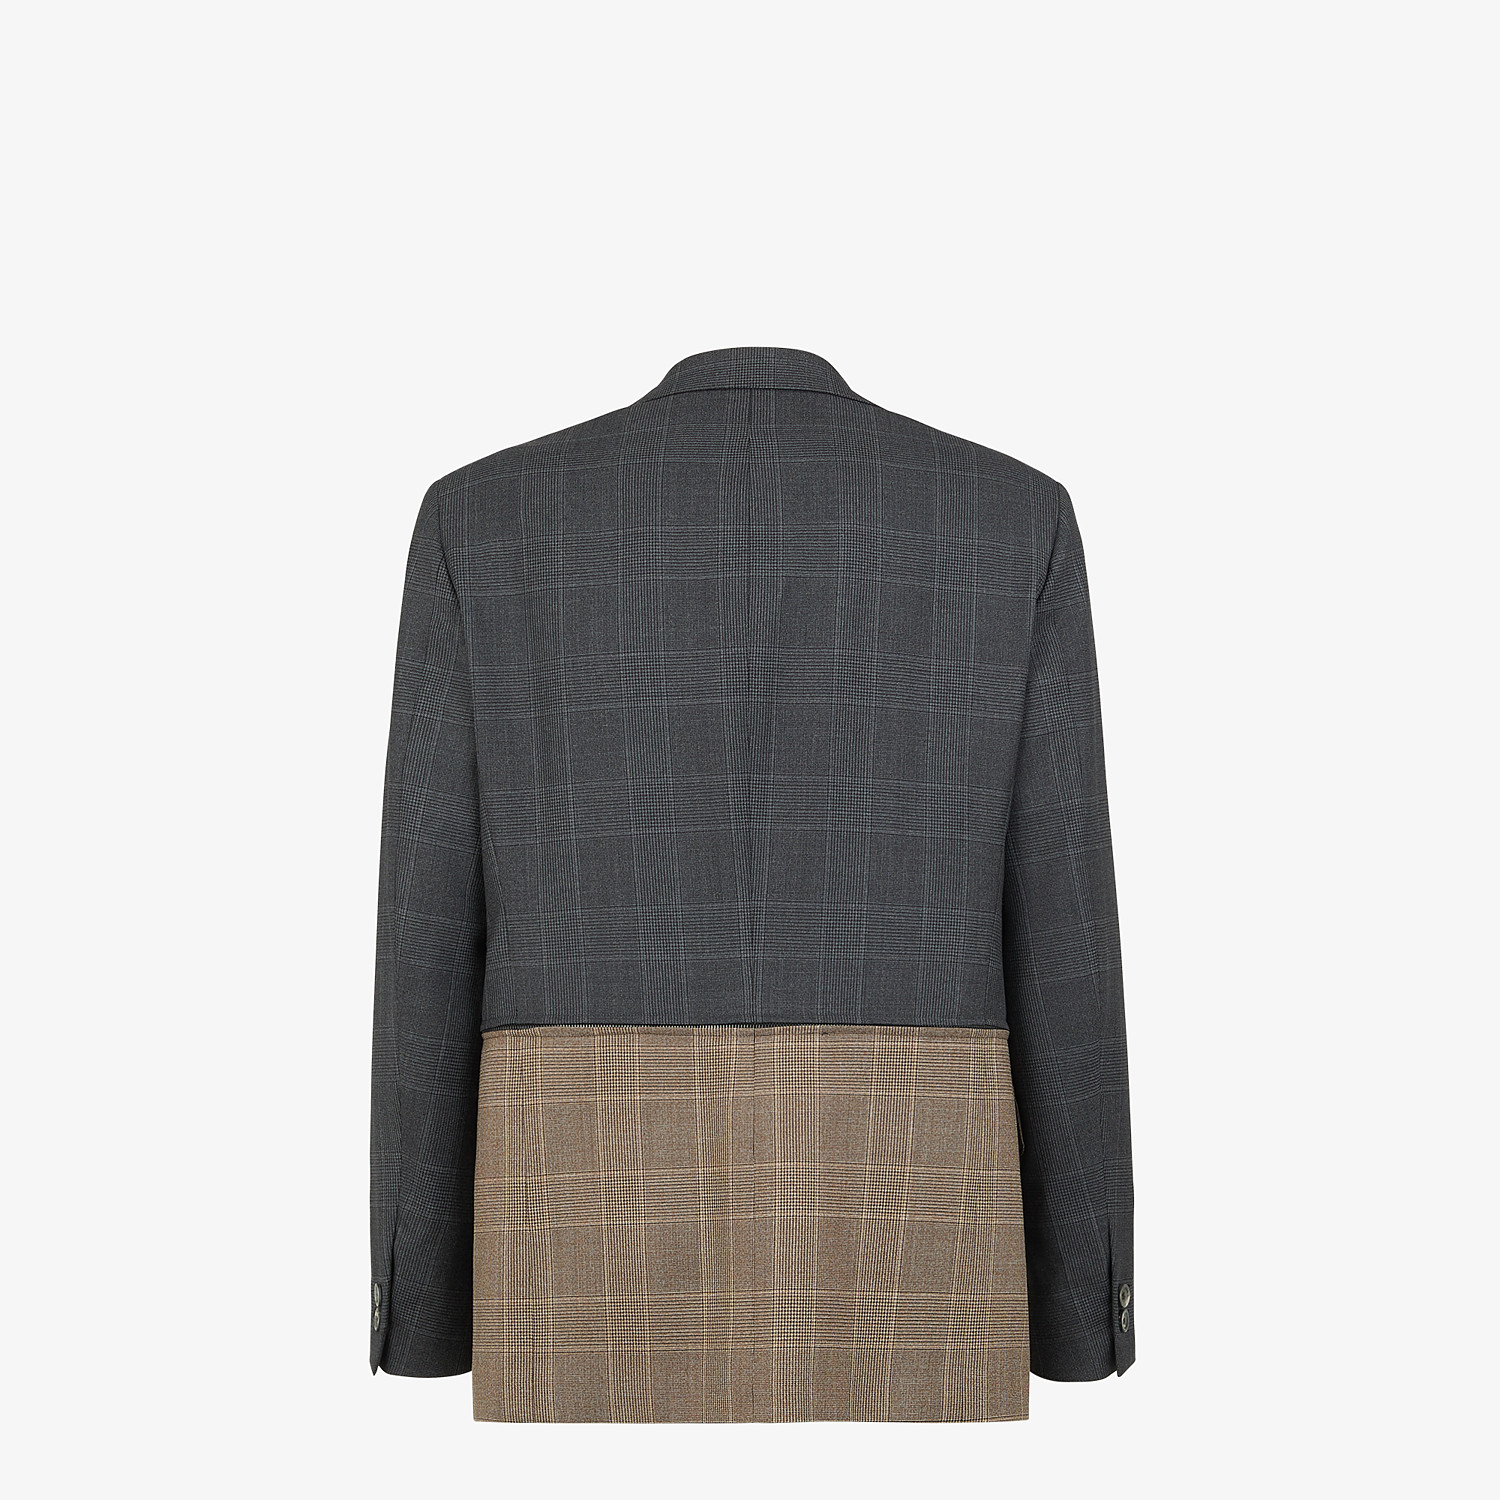 FENDI JACKET - Multicolour Prince of Wales check blazer - view 2 detail